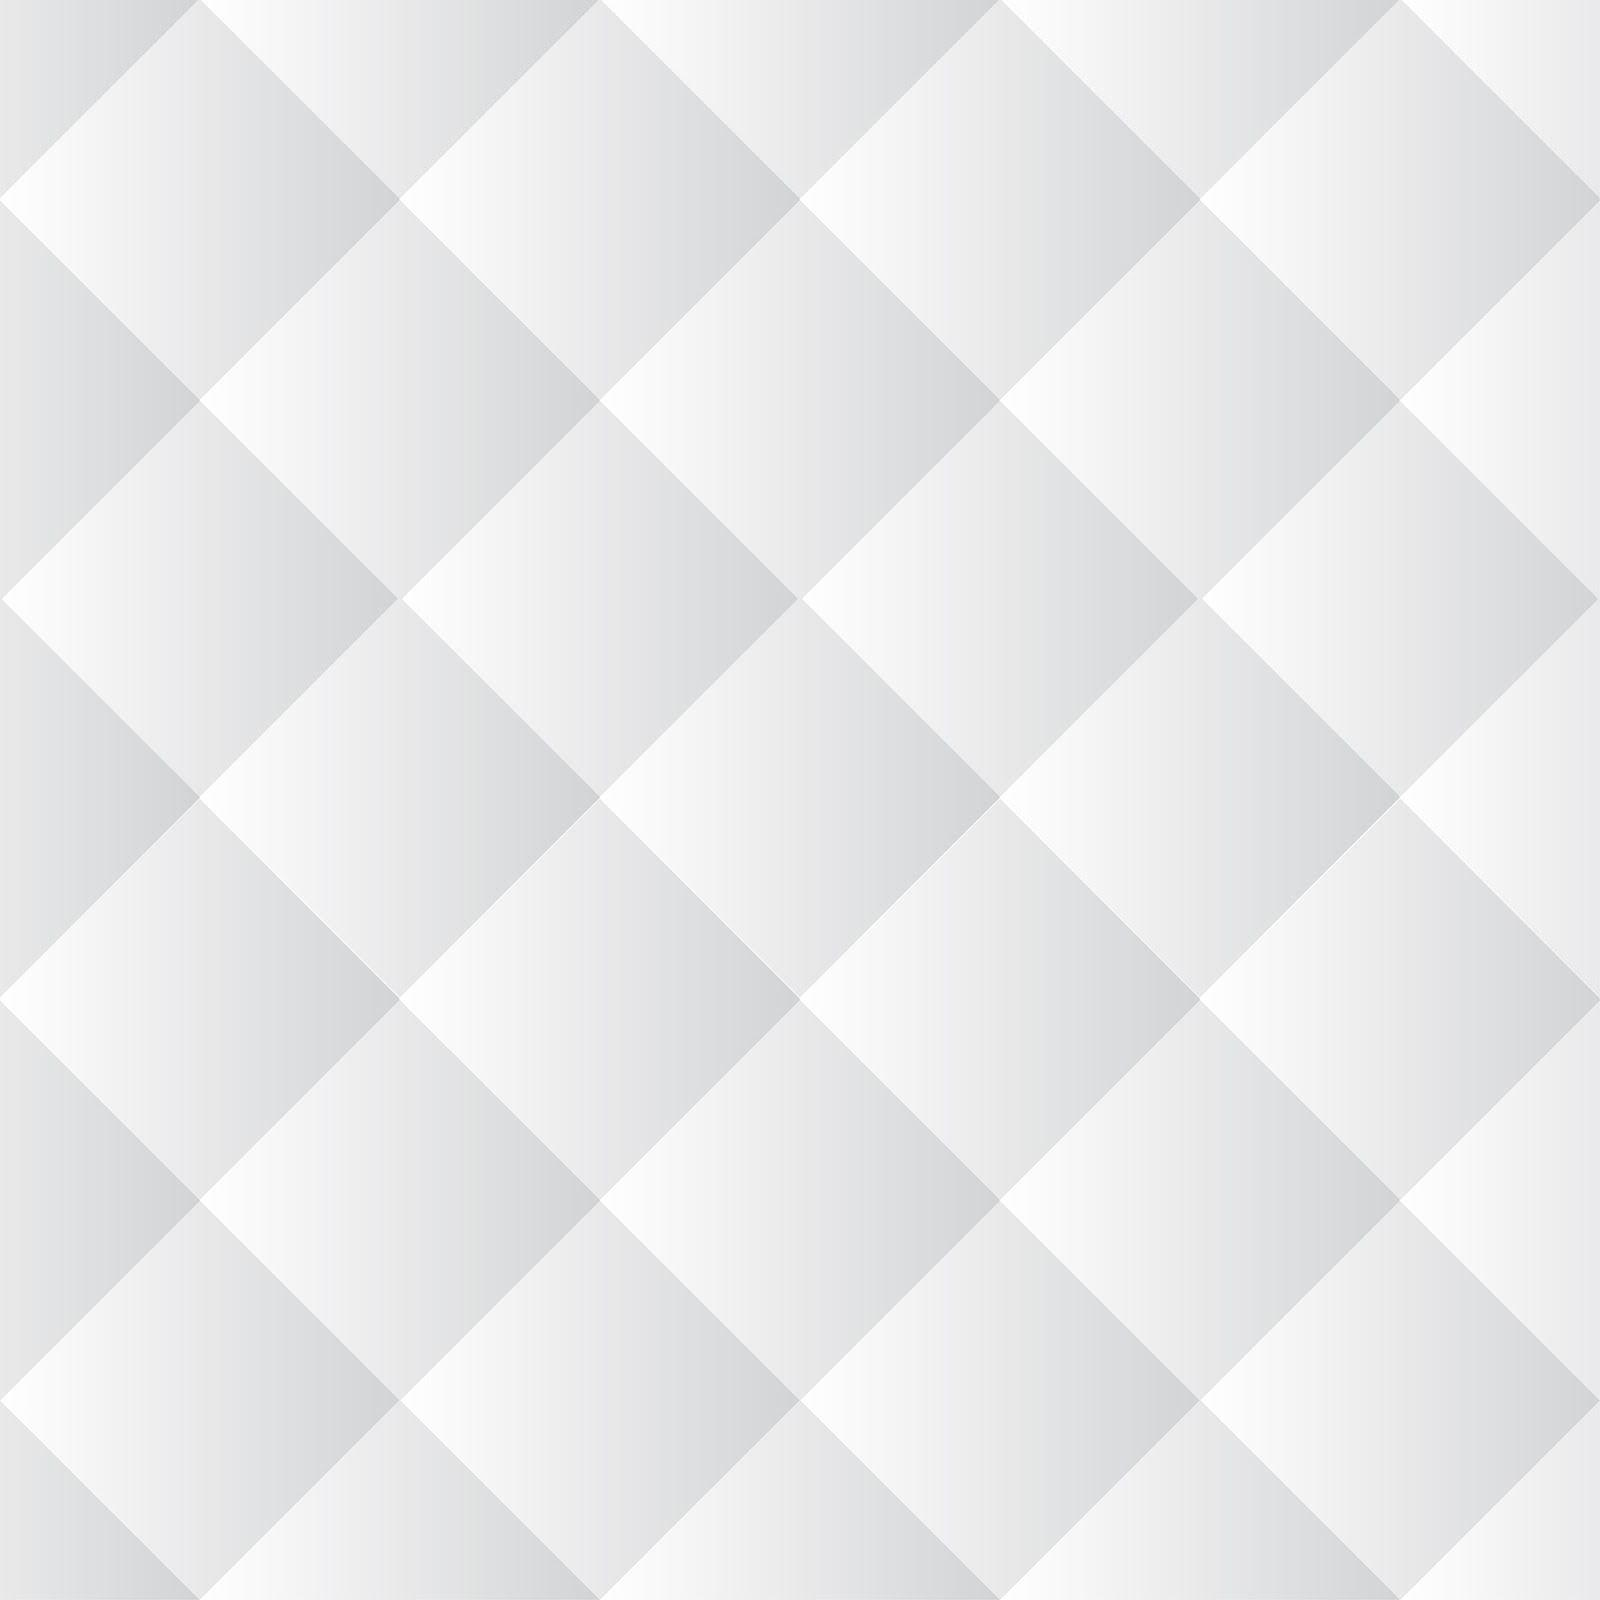 White Texture Wallpapers - Wallpaper Cave